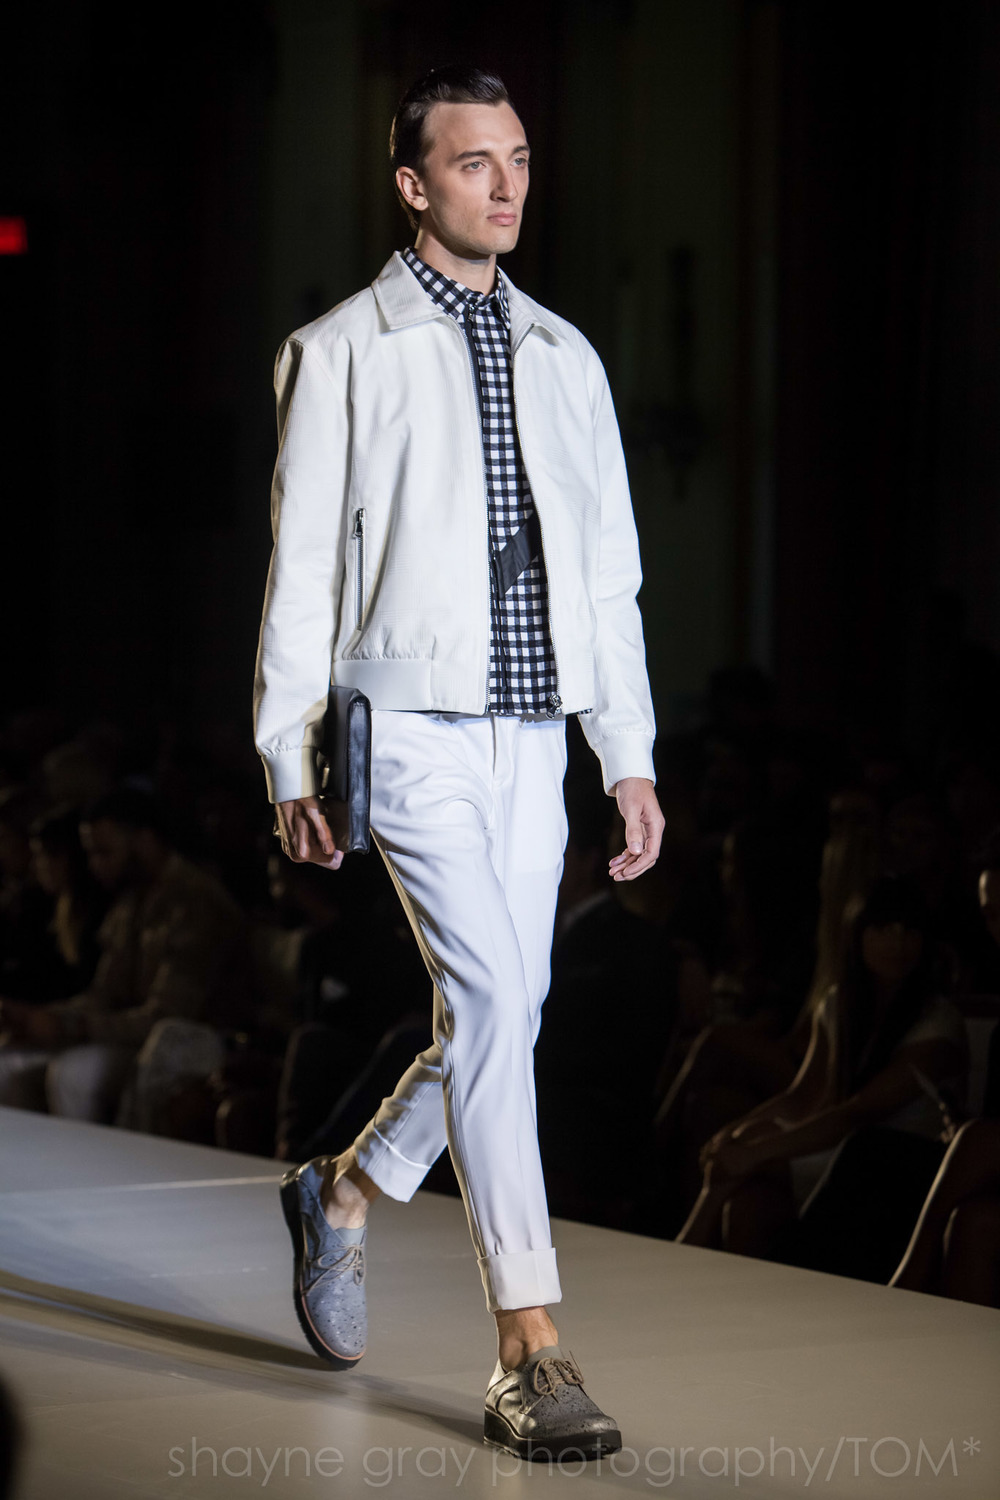 Shayne-Gray-Toronto-men's-fashion_week-TOM-noel-crisostomo-8446.jpg